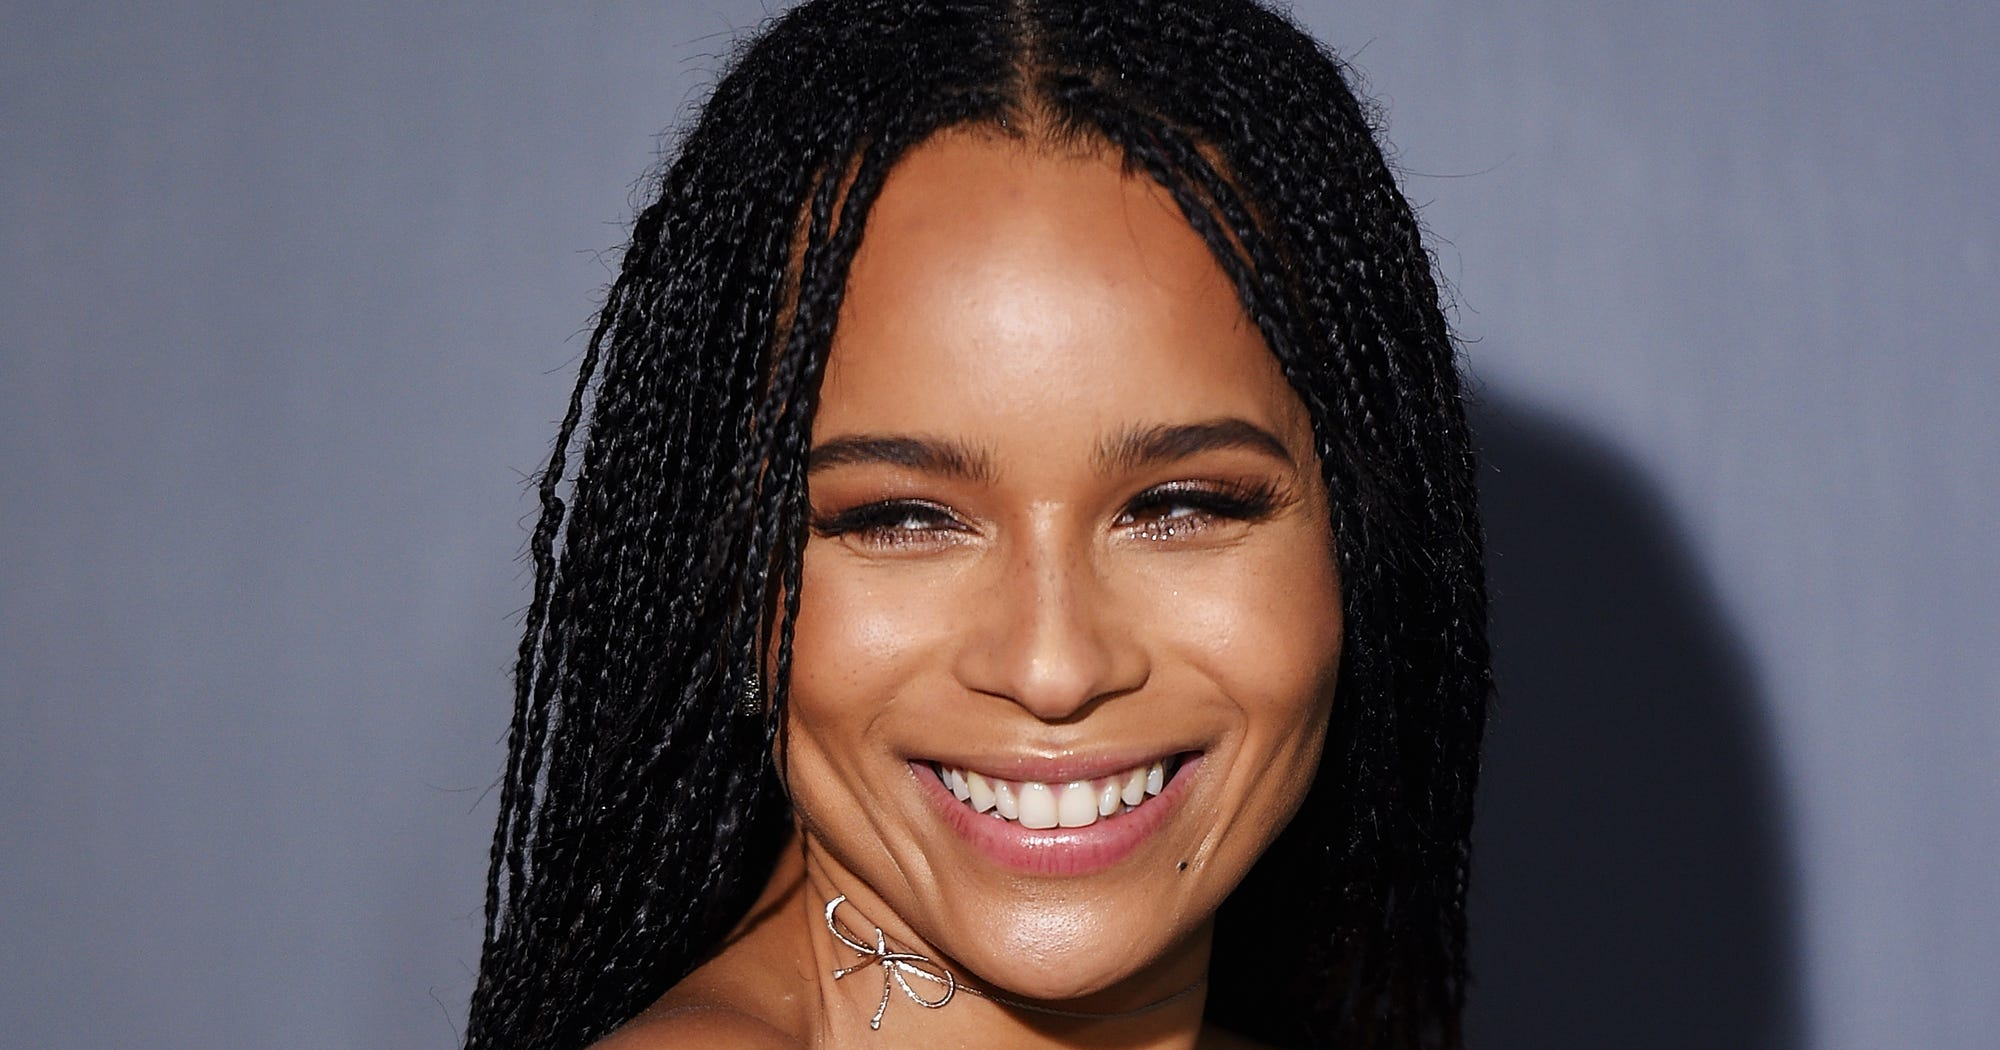 Zoe Kravitz Big Little Lies Natural Hairstyles Looks